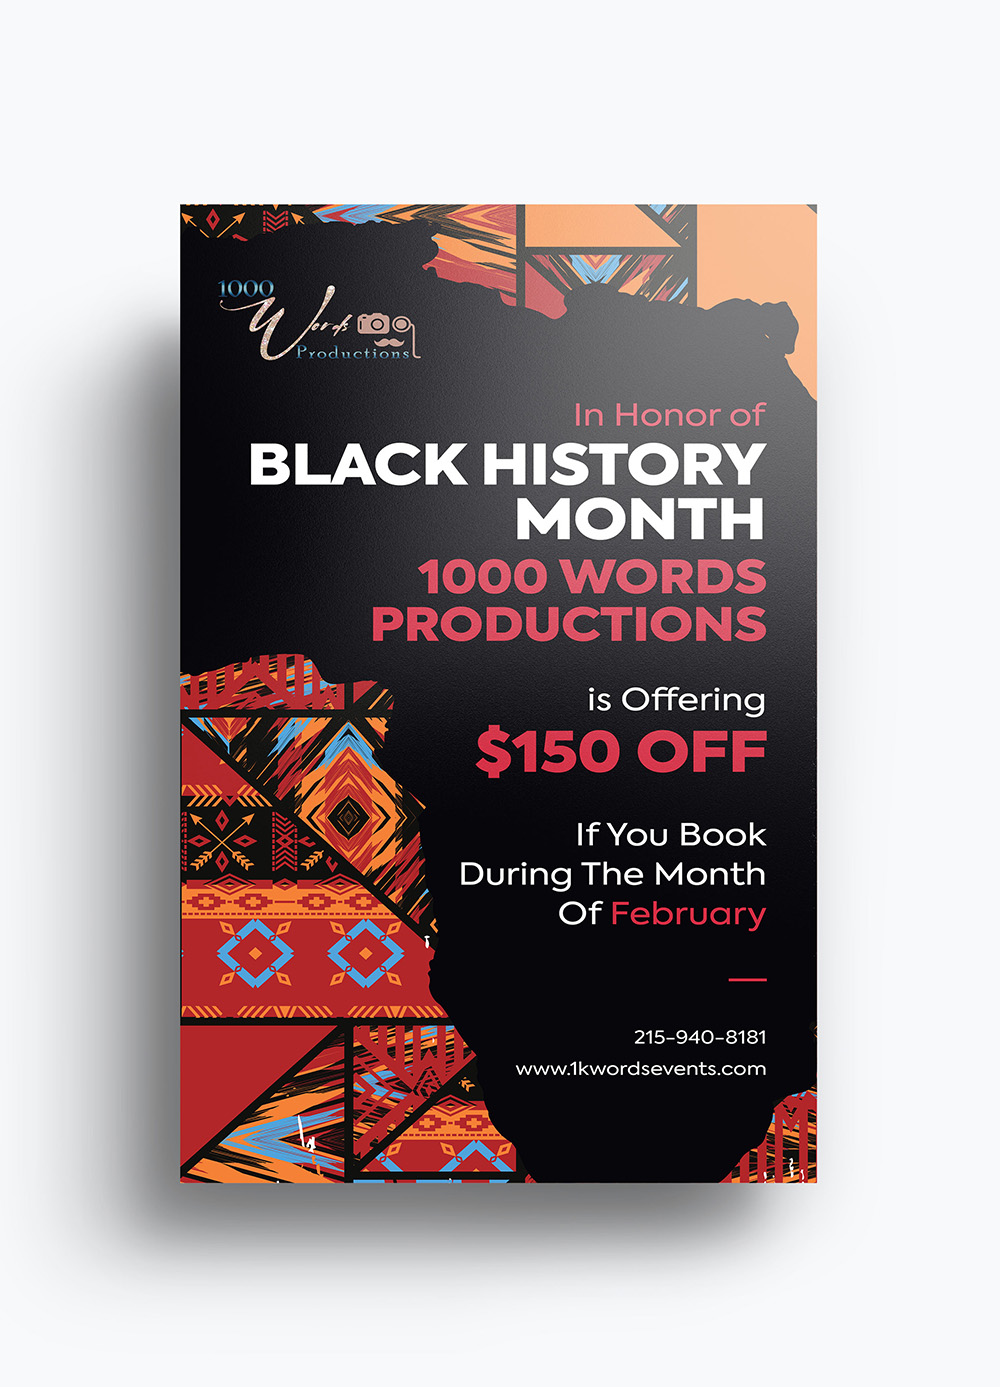 BHM Flyer Design